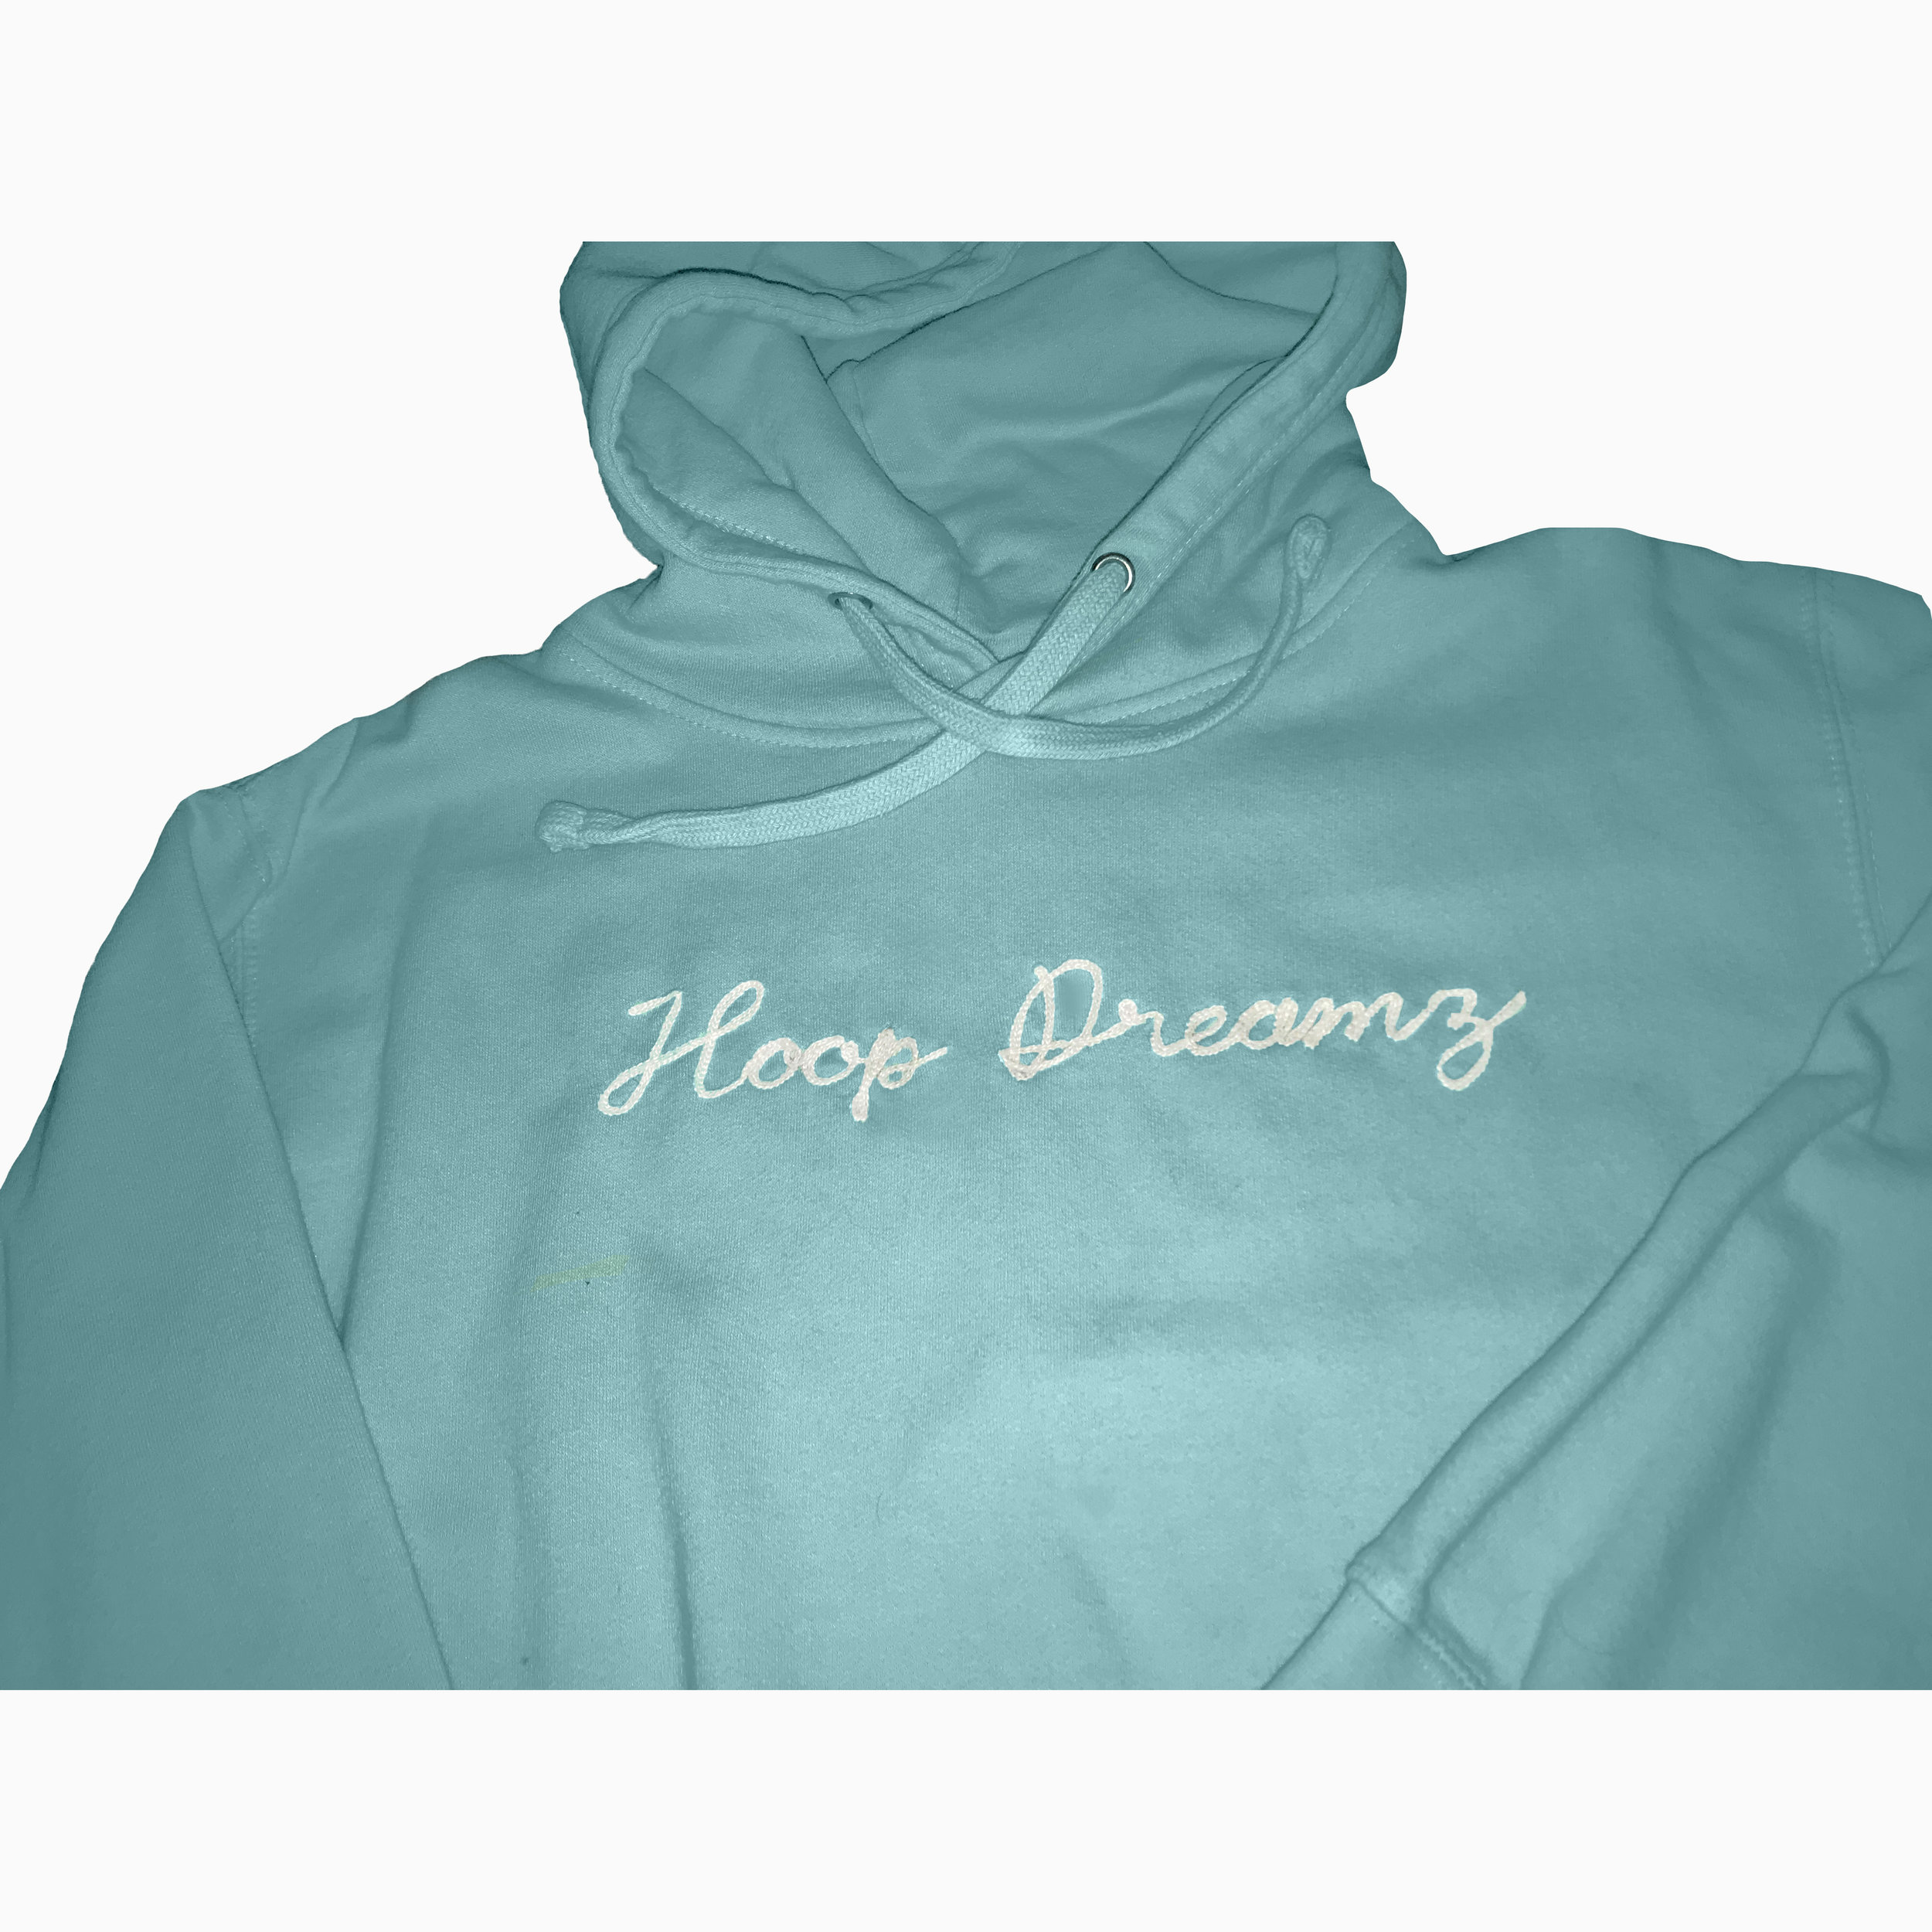 Hood Dreams More Blue Square copy.jpg